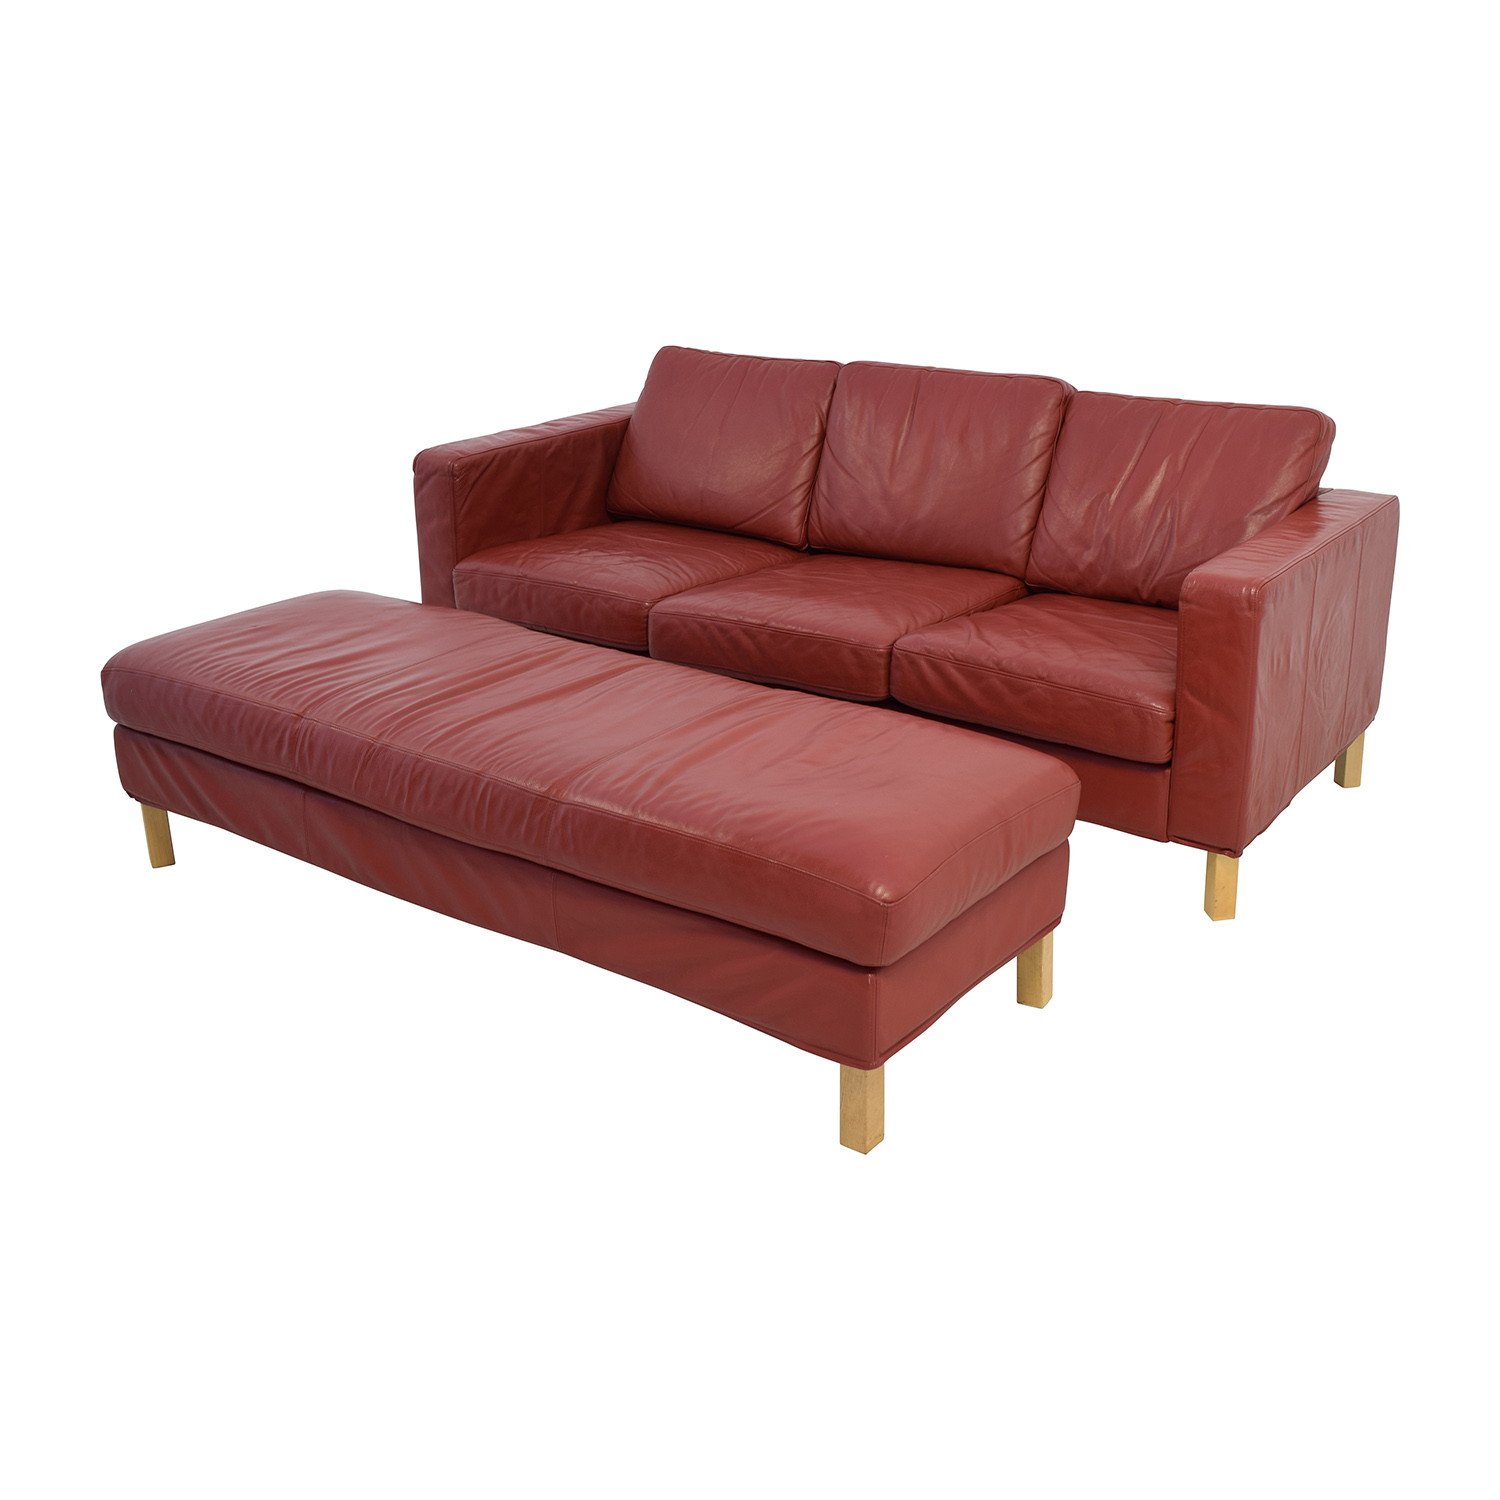 Contemporary Red Leather Couch and Ottoman dimensions